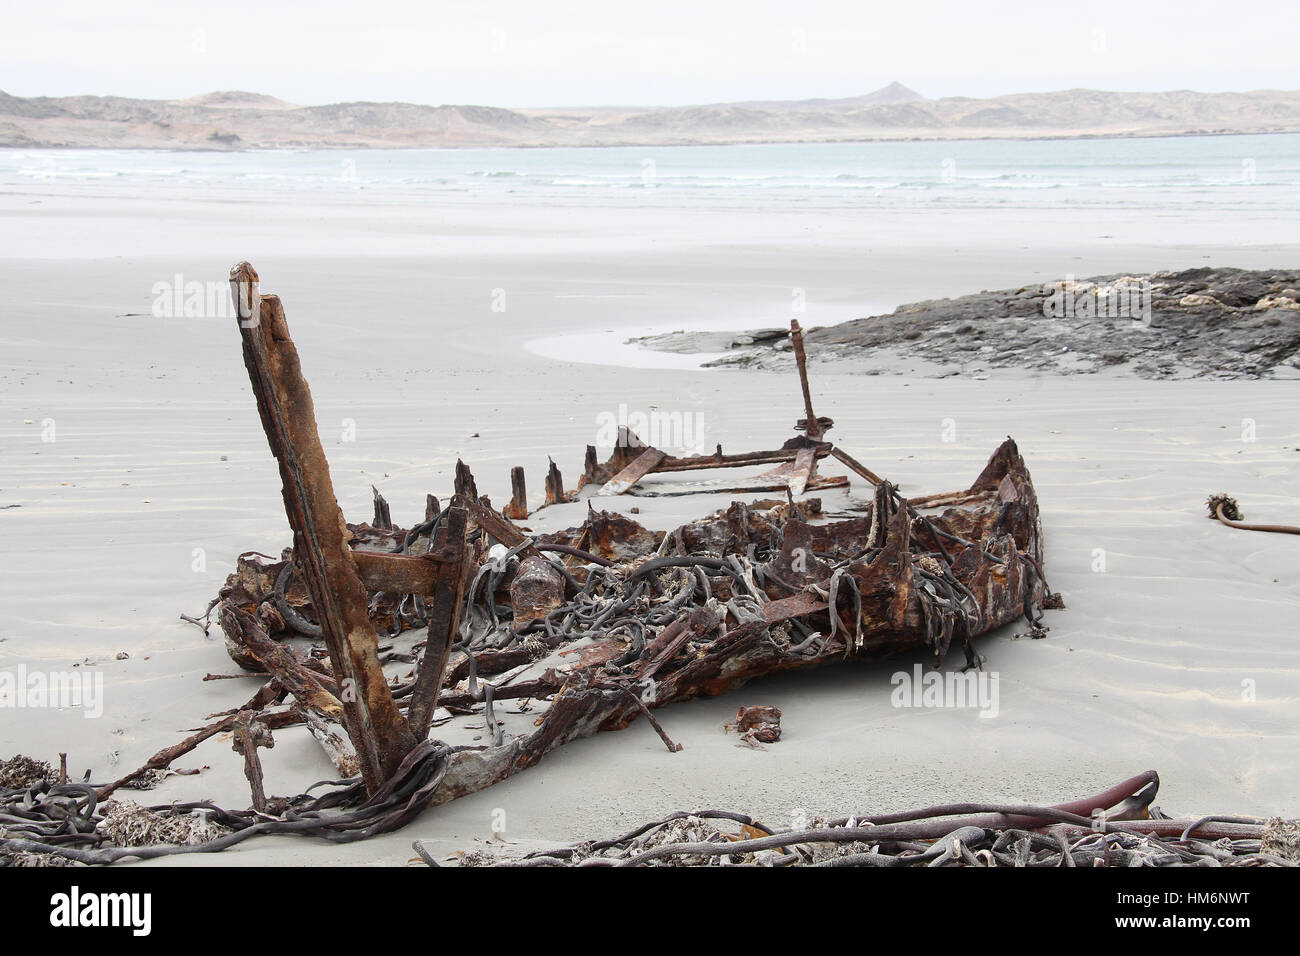 Remains of a boat on the beach at Grosse Bucht on the Luderitz Peninsula in Namibia - Stock Image